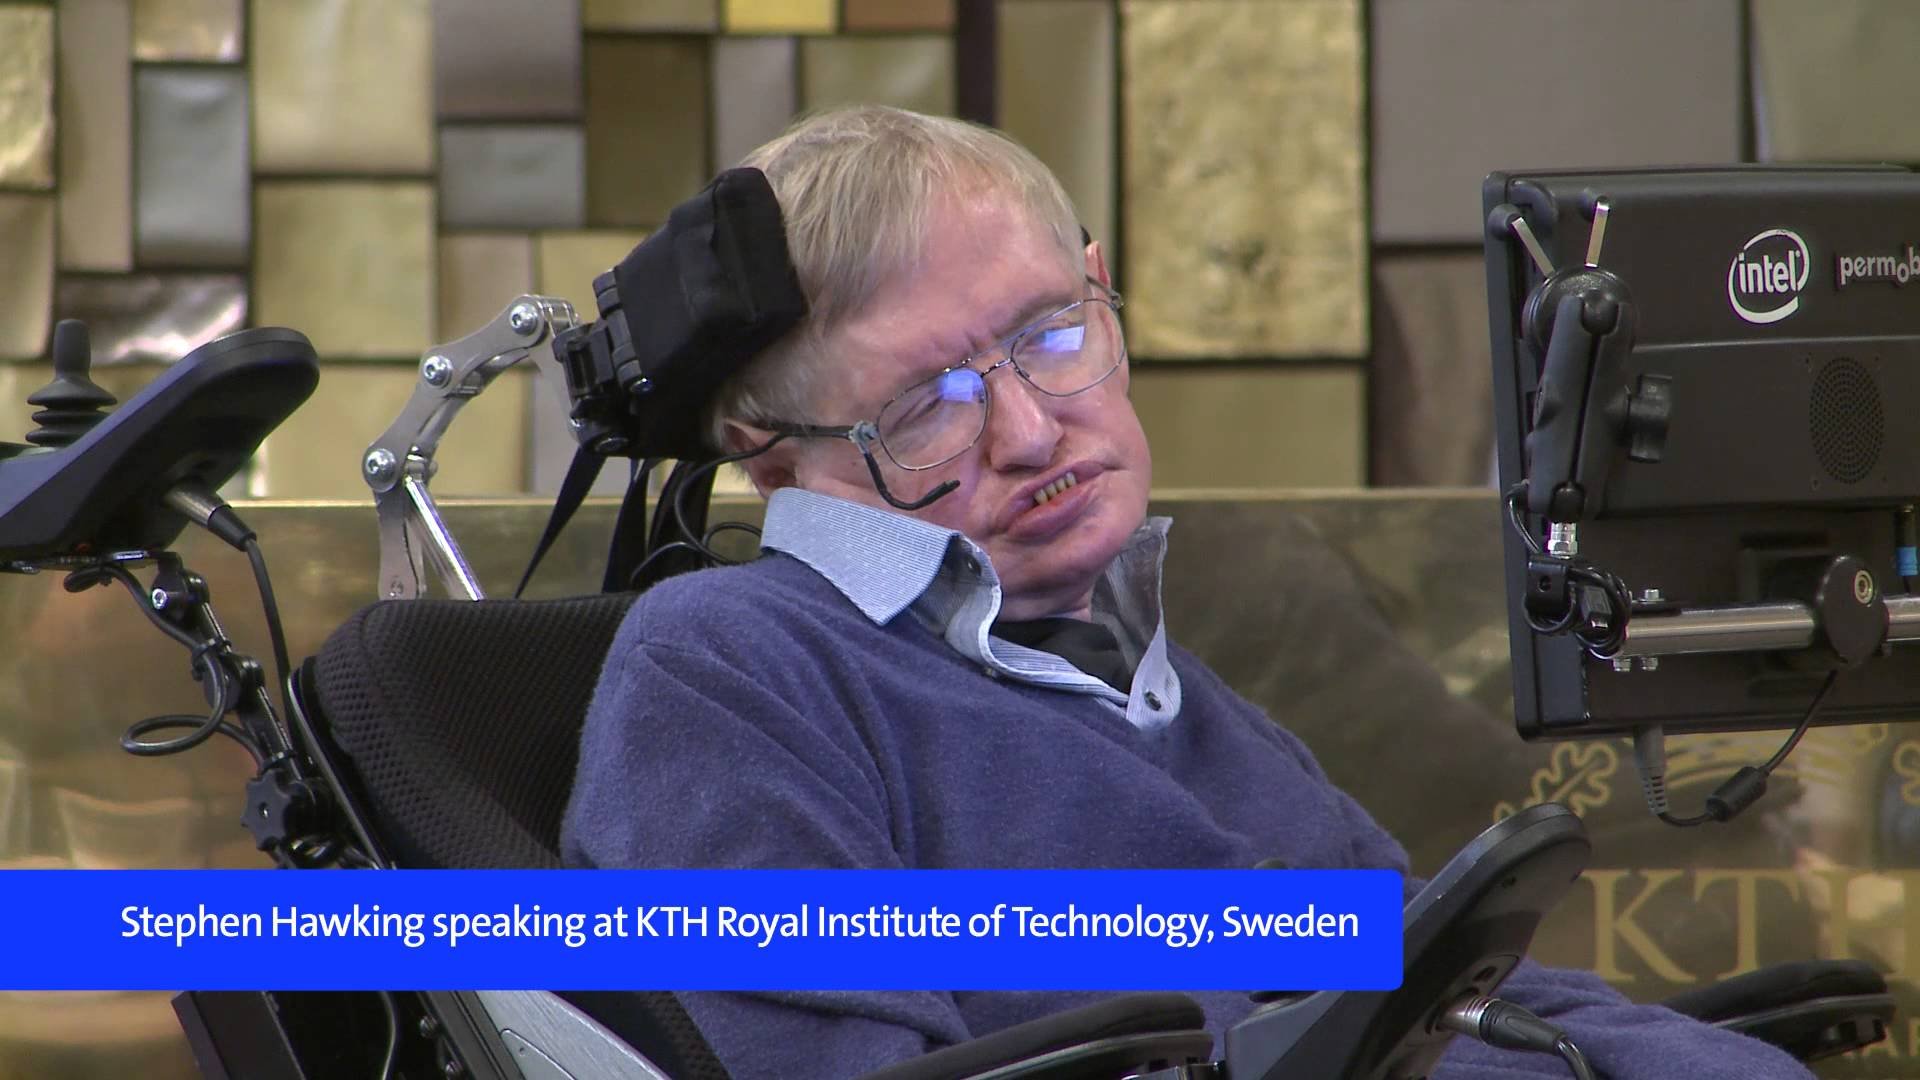 Stephen Hawking Says He's Figured Out How To Sescape From a Black Hole